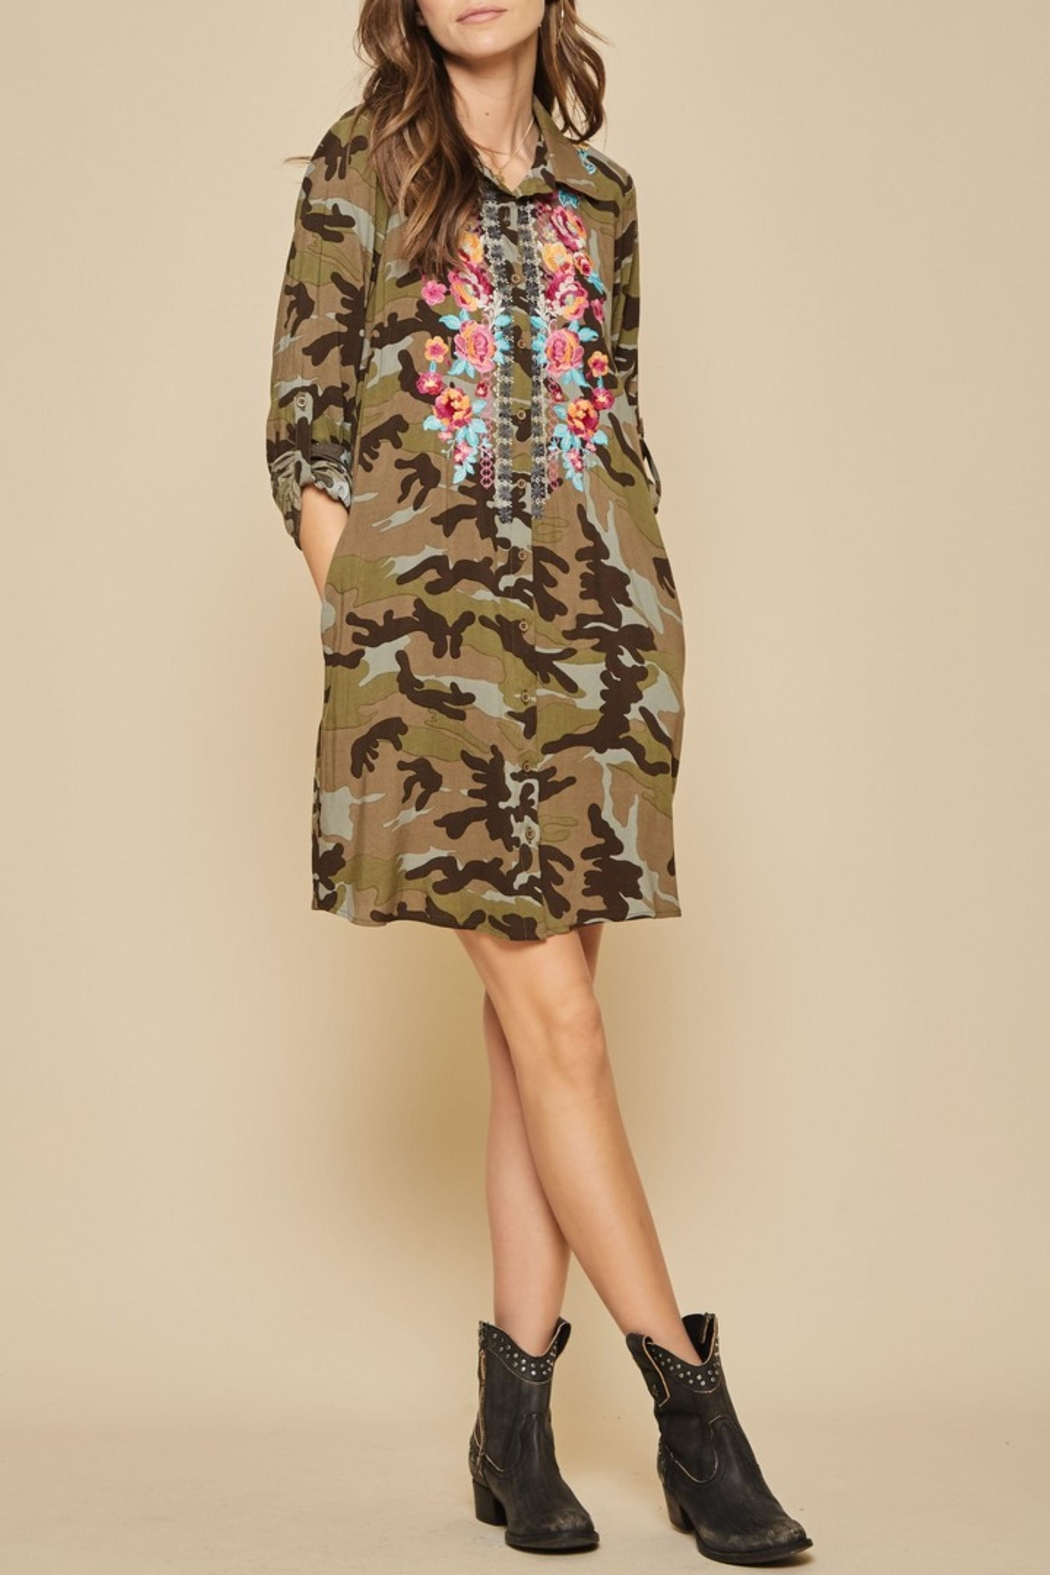 Andree by Unit Embroidered Camo Dress - Main Image